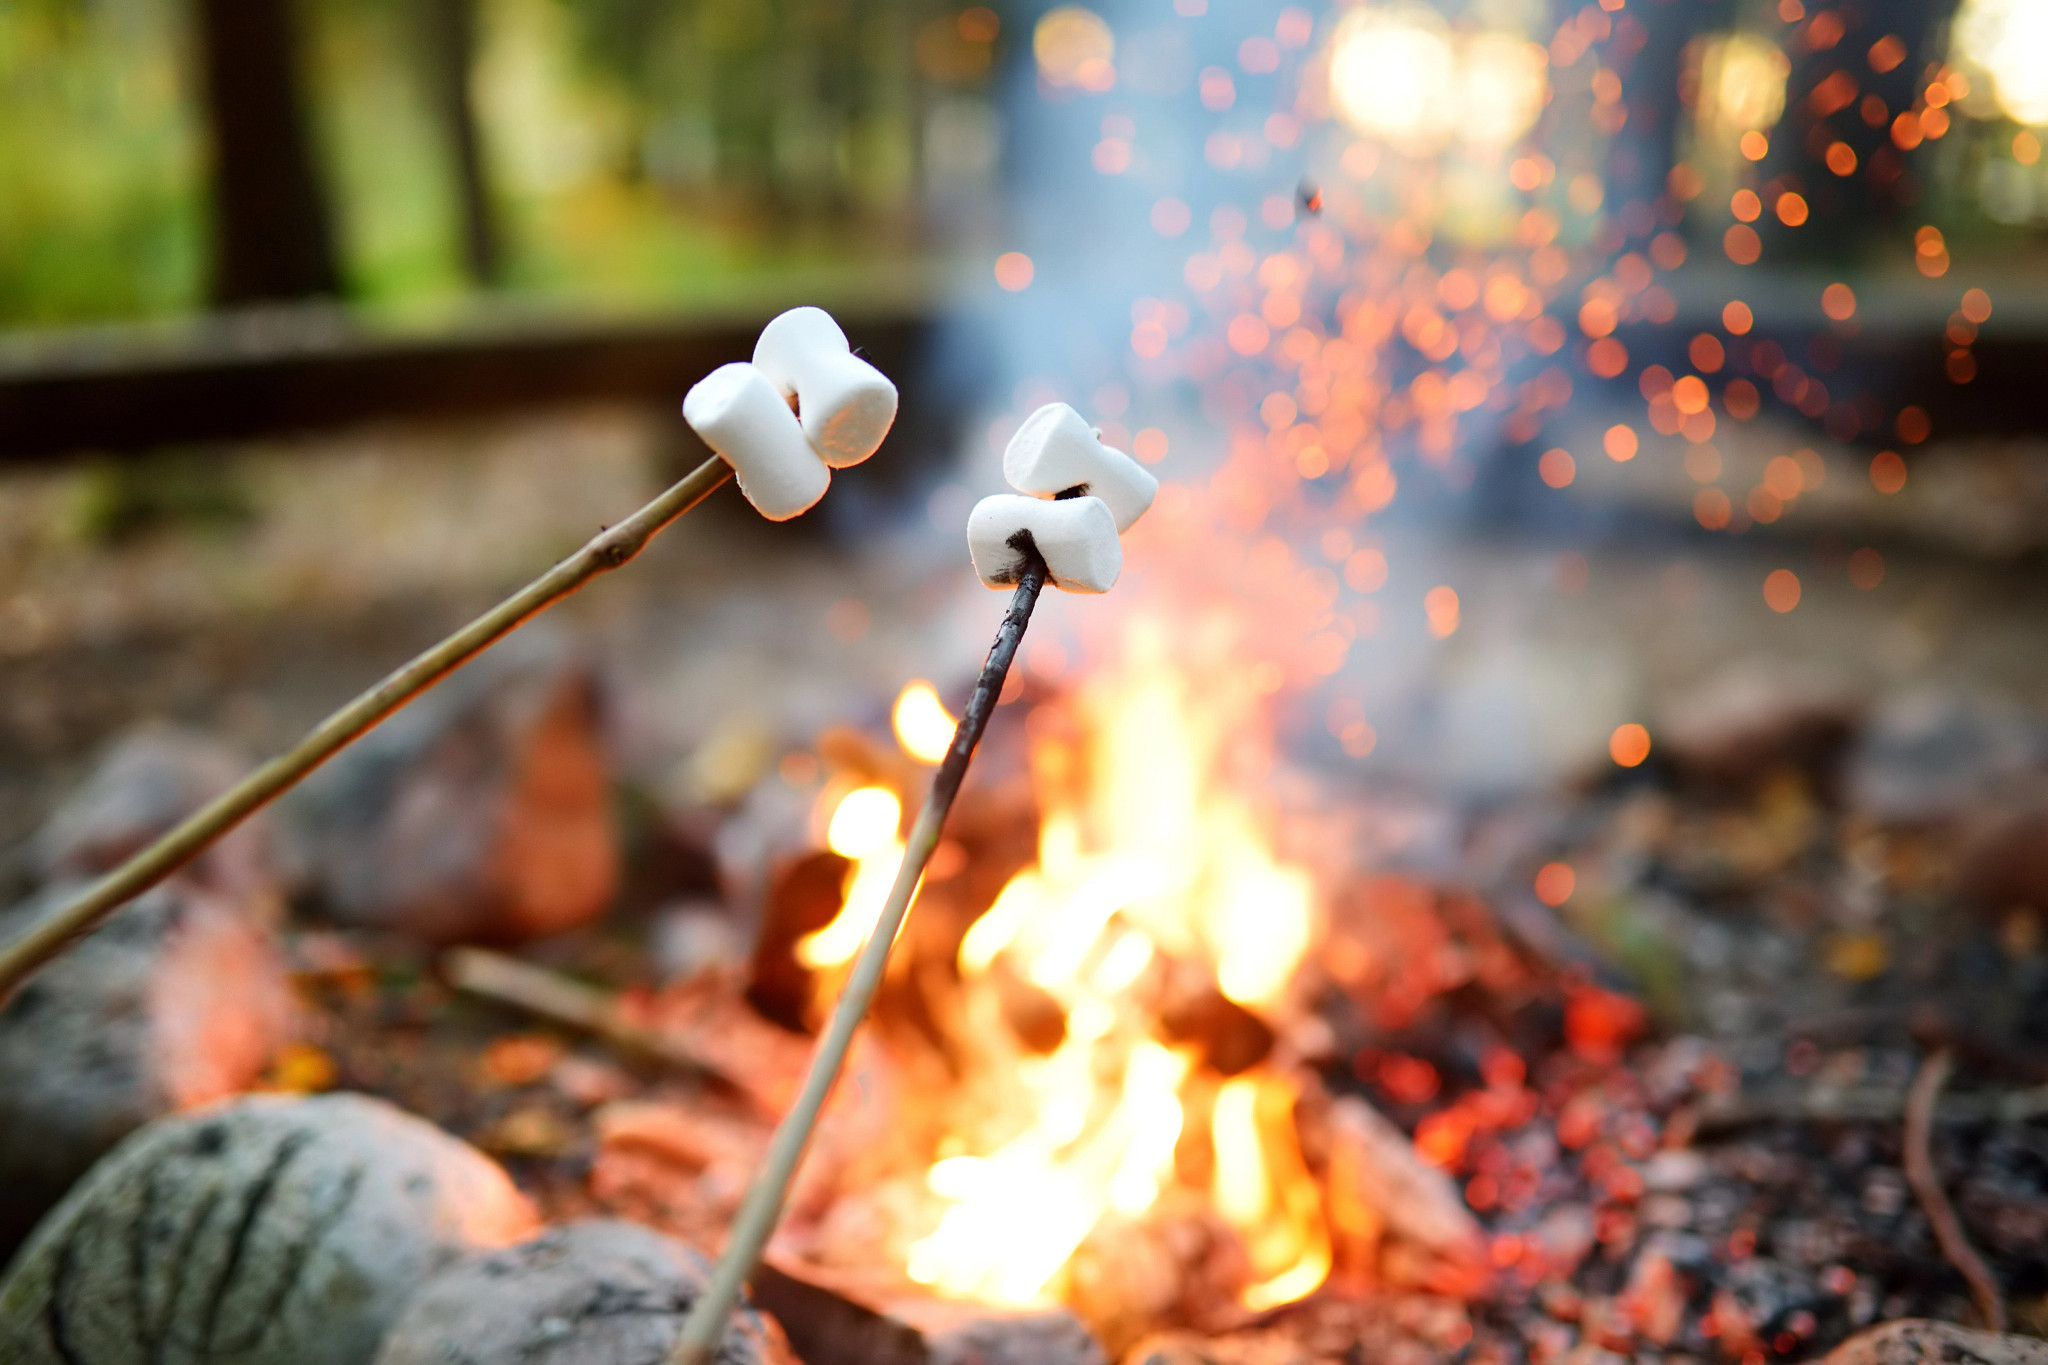 Roasting marshmallows on sticks over open campfire during fall